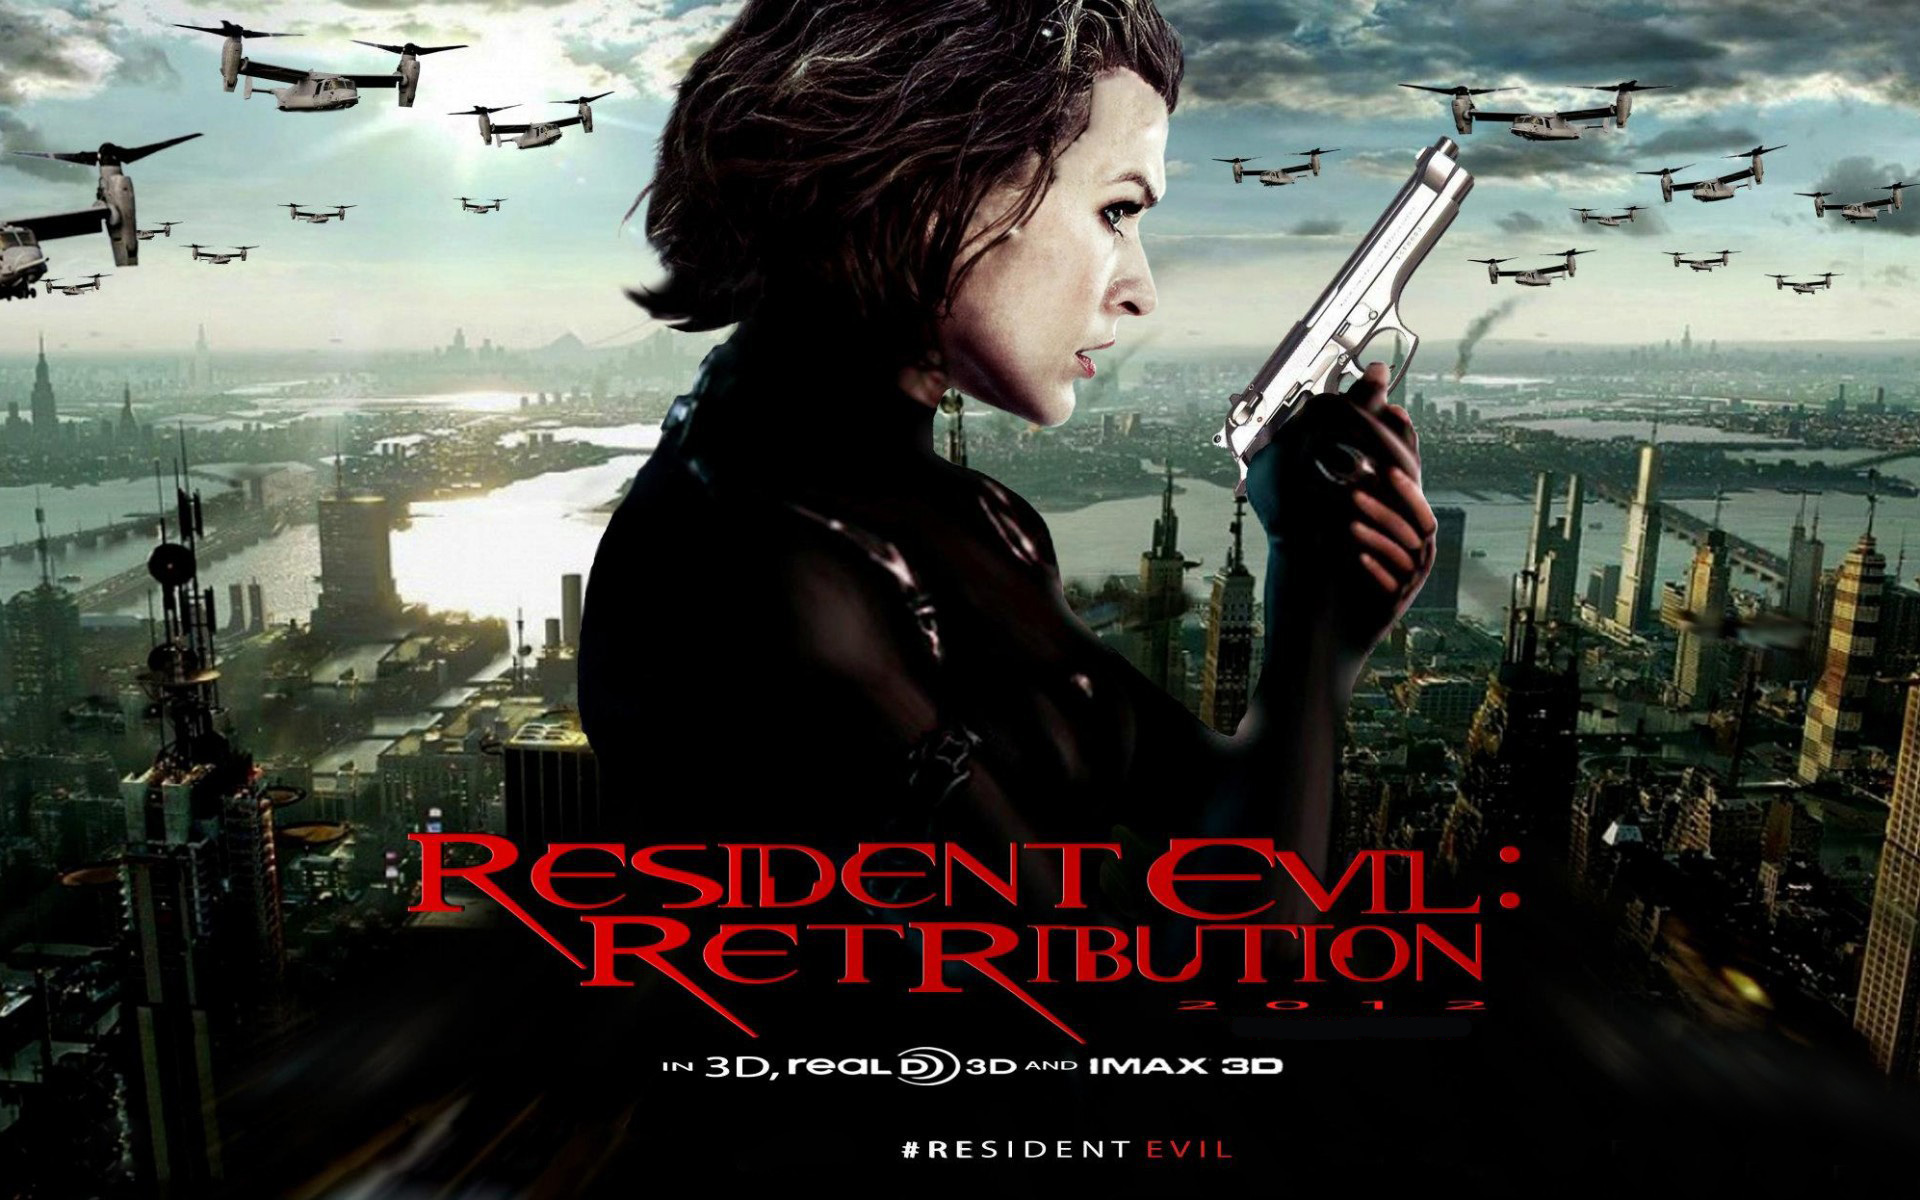 2012 Resident Evil 5 Retribution